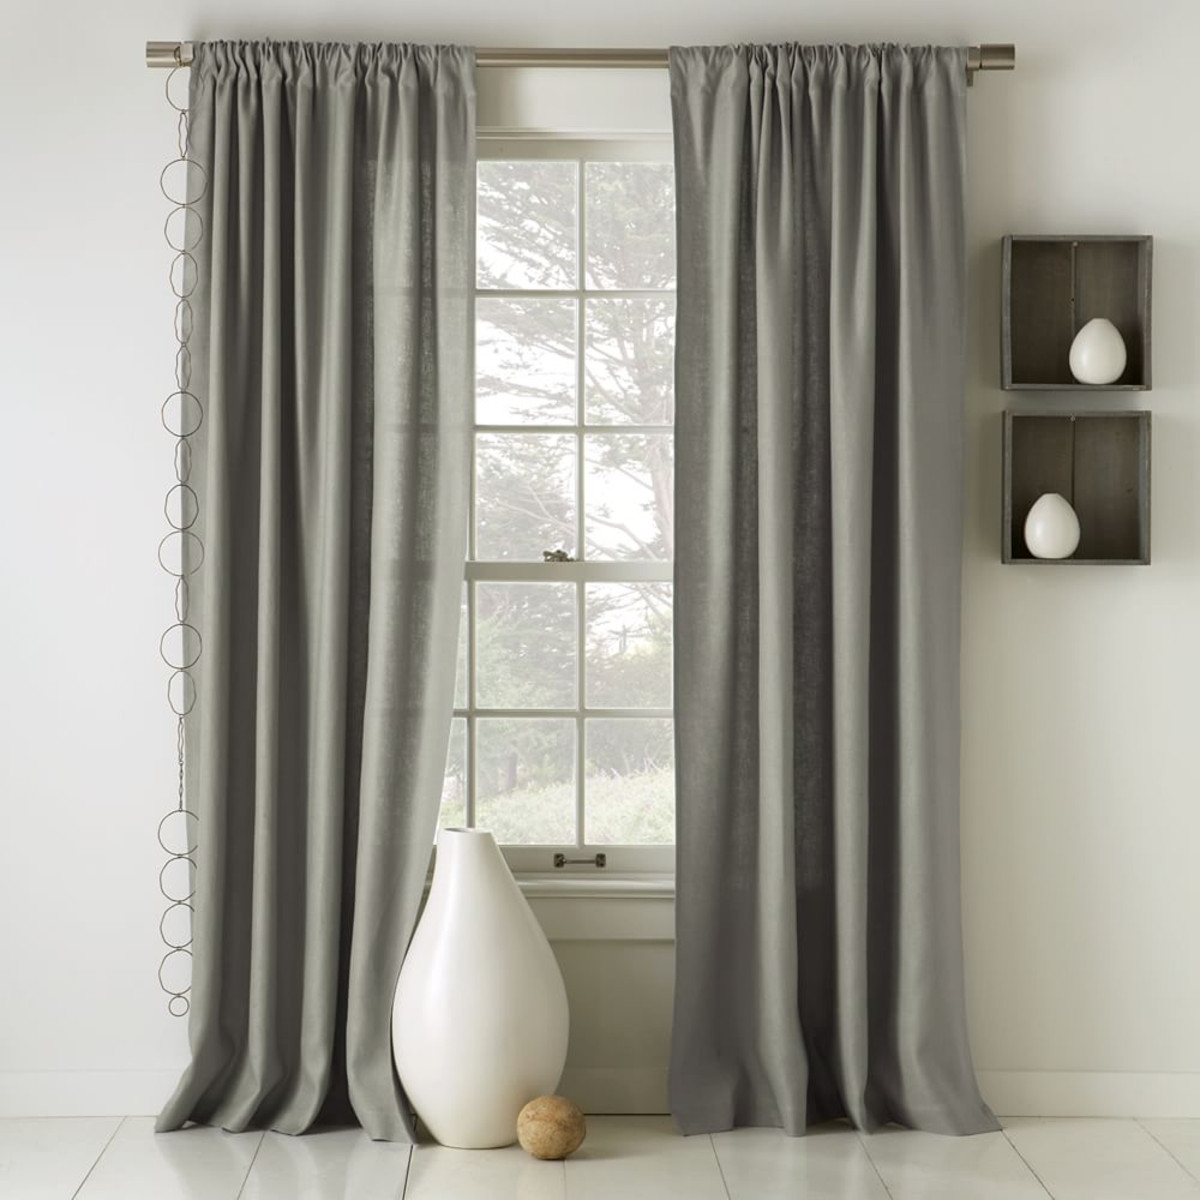 Blackout Lined Linen Curtains Business For Curtains Decoration With Lined Cotton Curtains (Image 4 of 15)